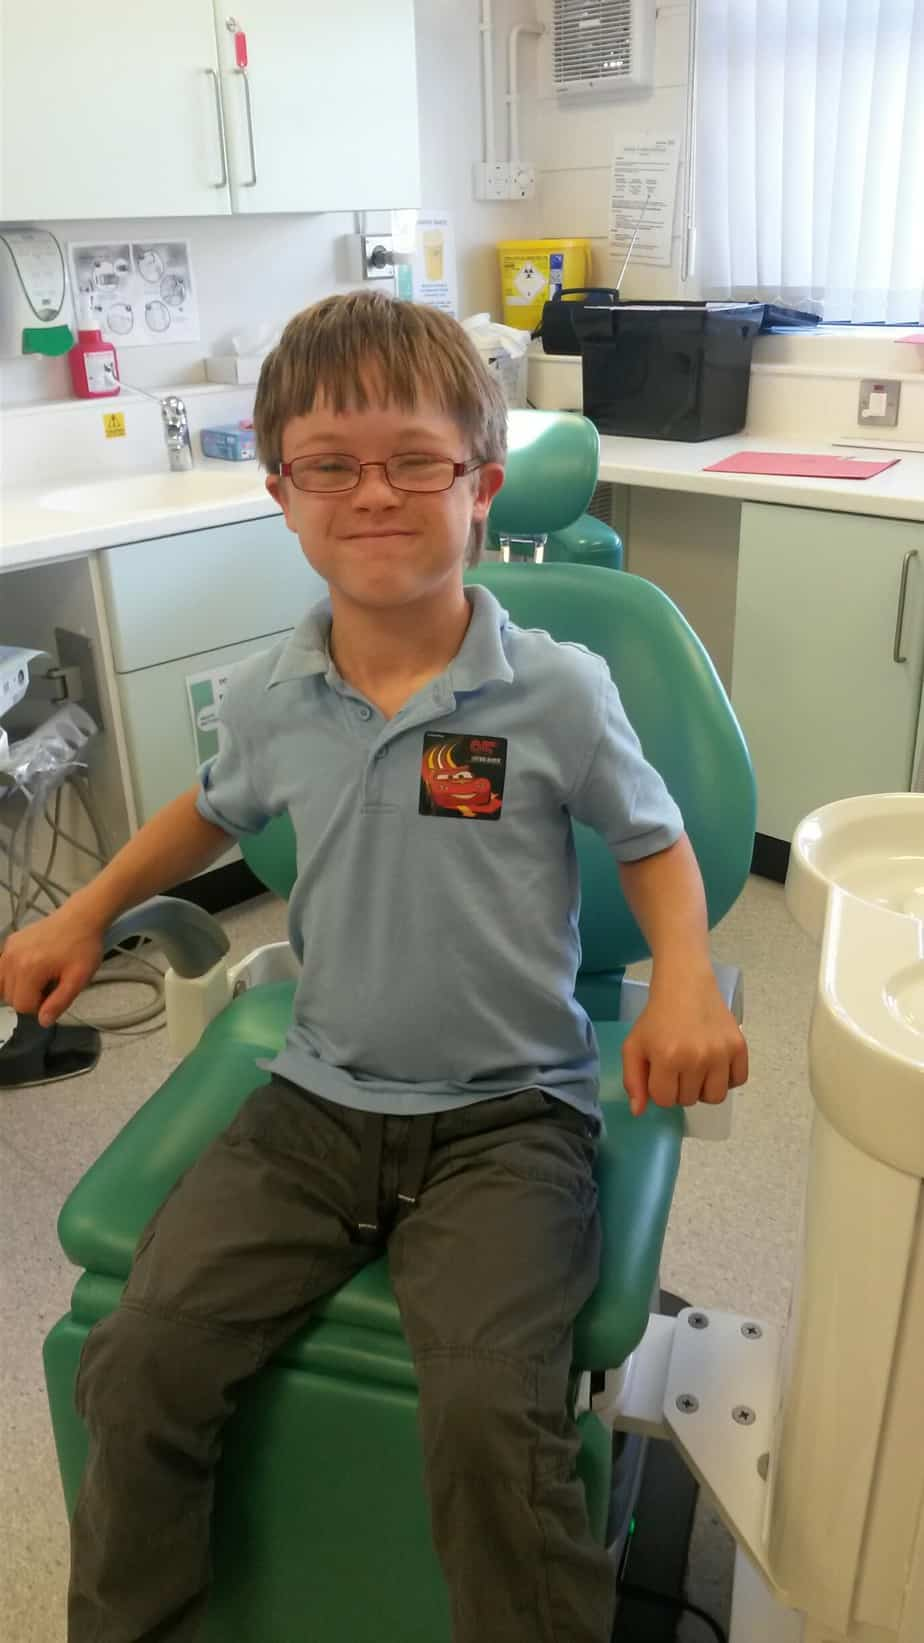 Sensory Processing Disorder: How Therapeutic Listening Had A Massive Impact On George